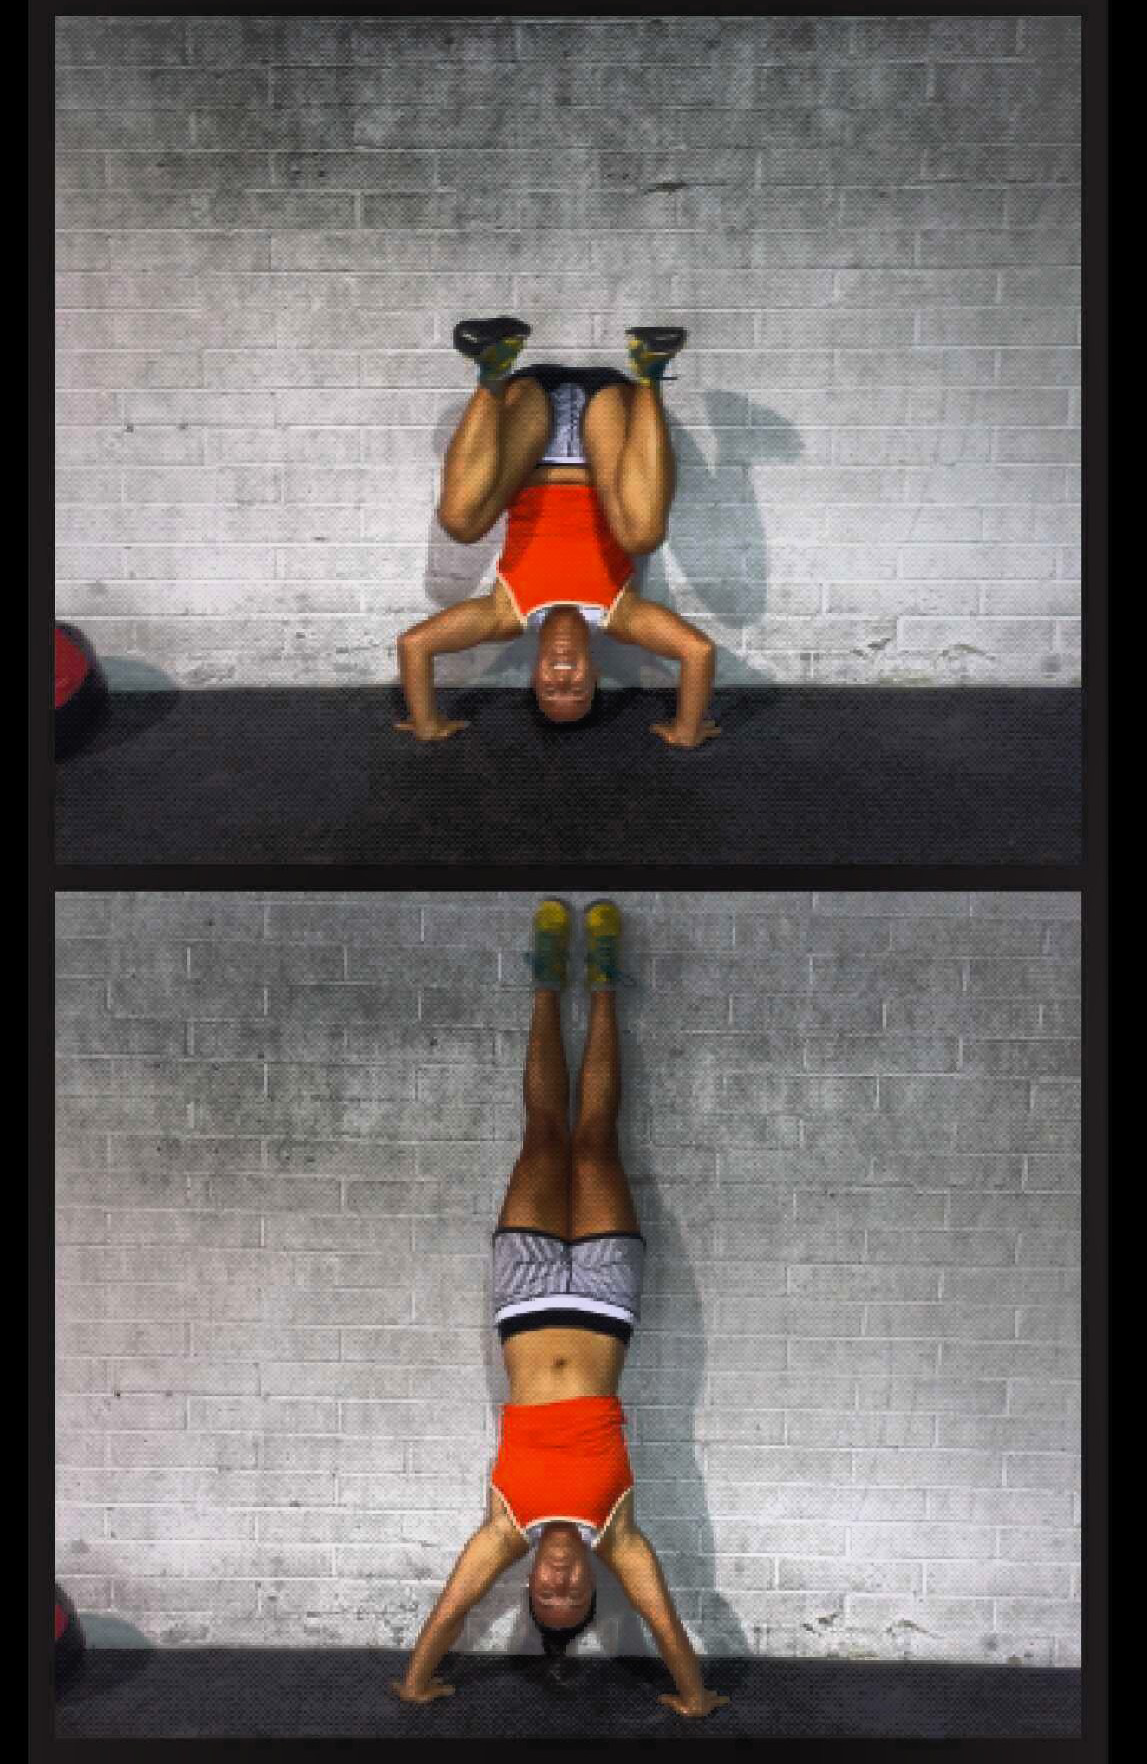 The Kipping Handstand Push-Up